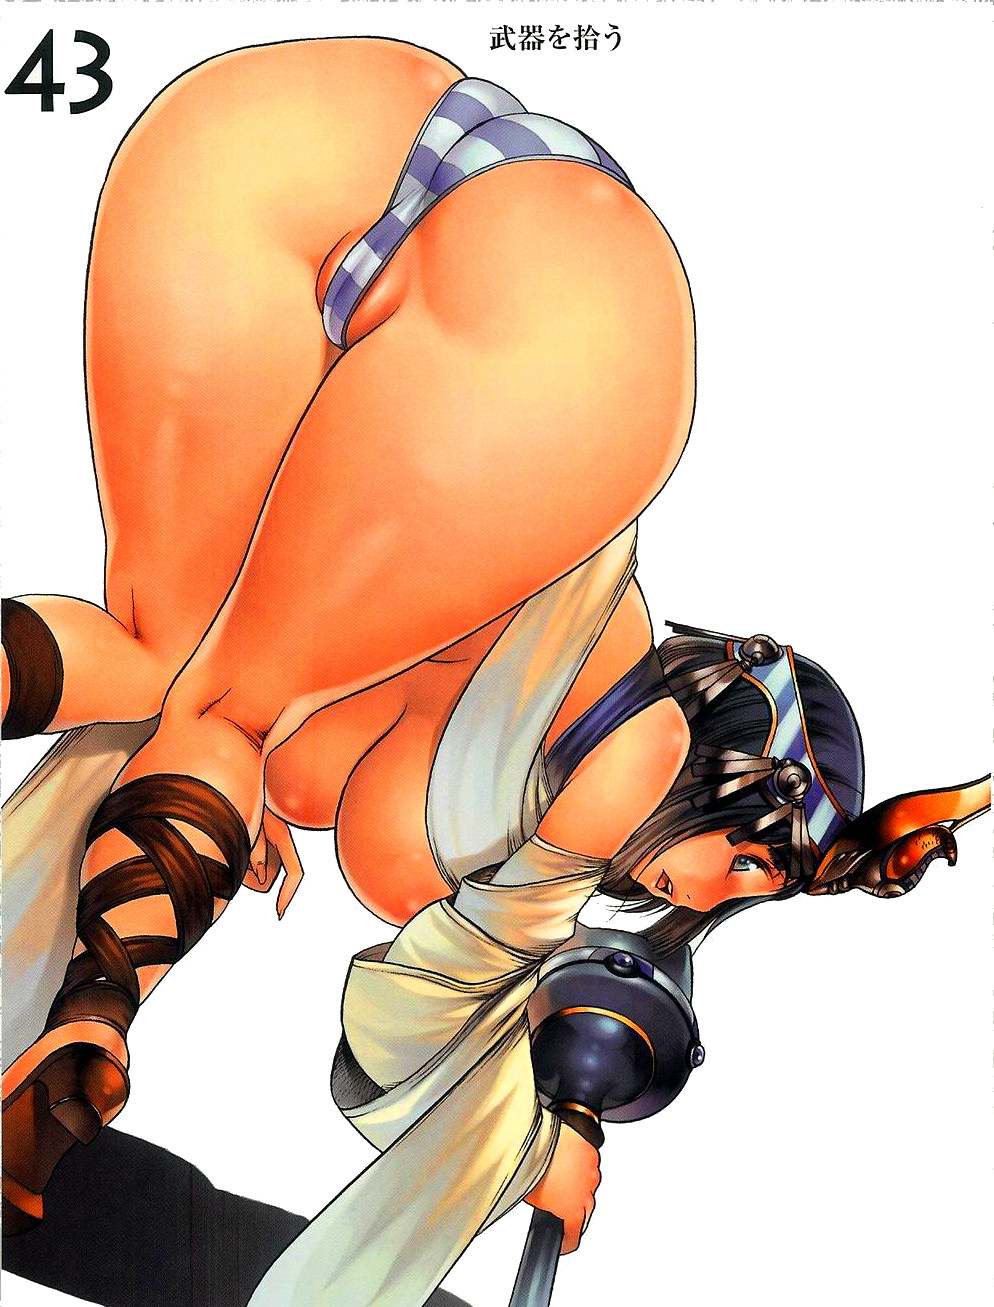 Queen s blade sex pics sexual pics